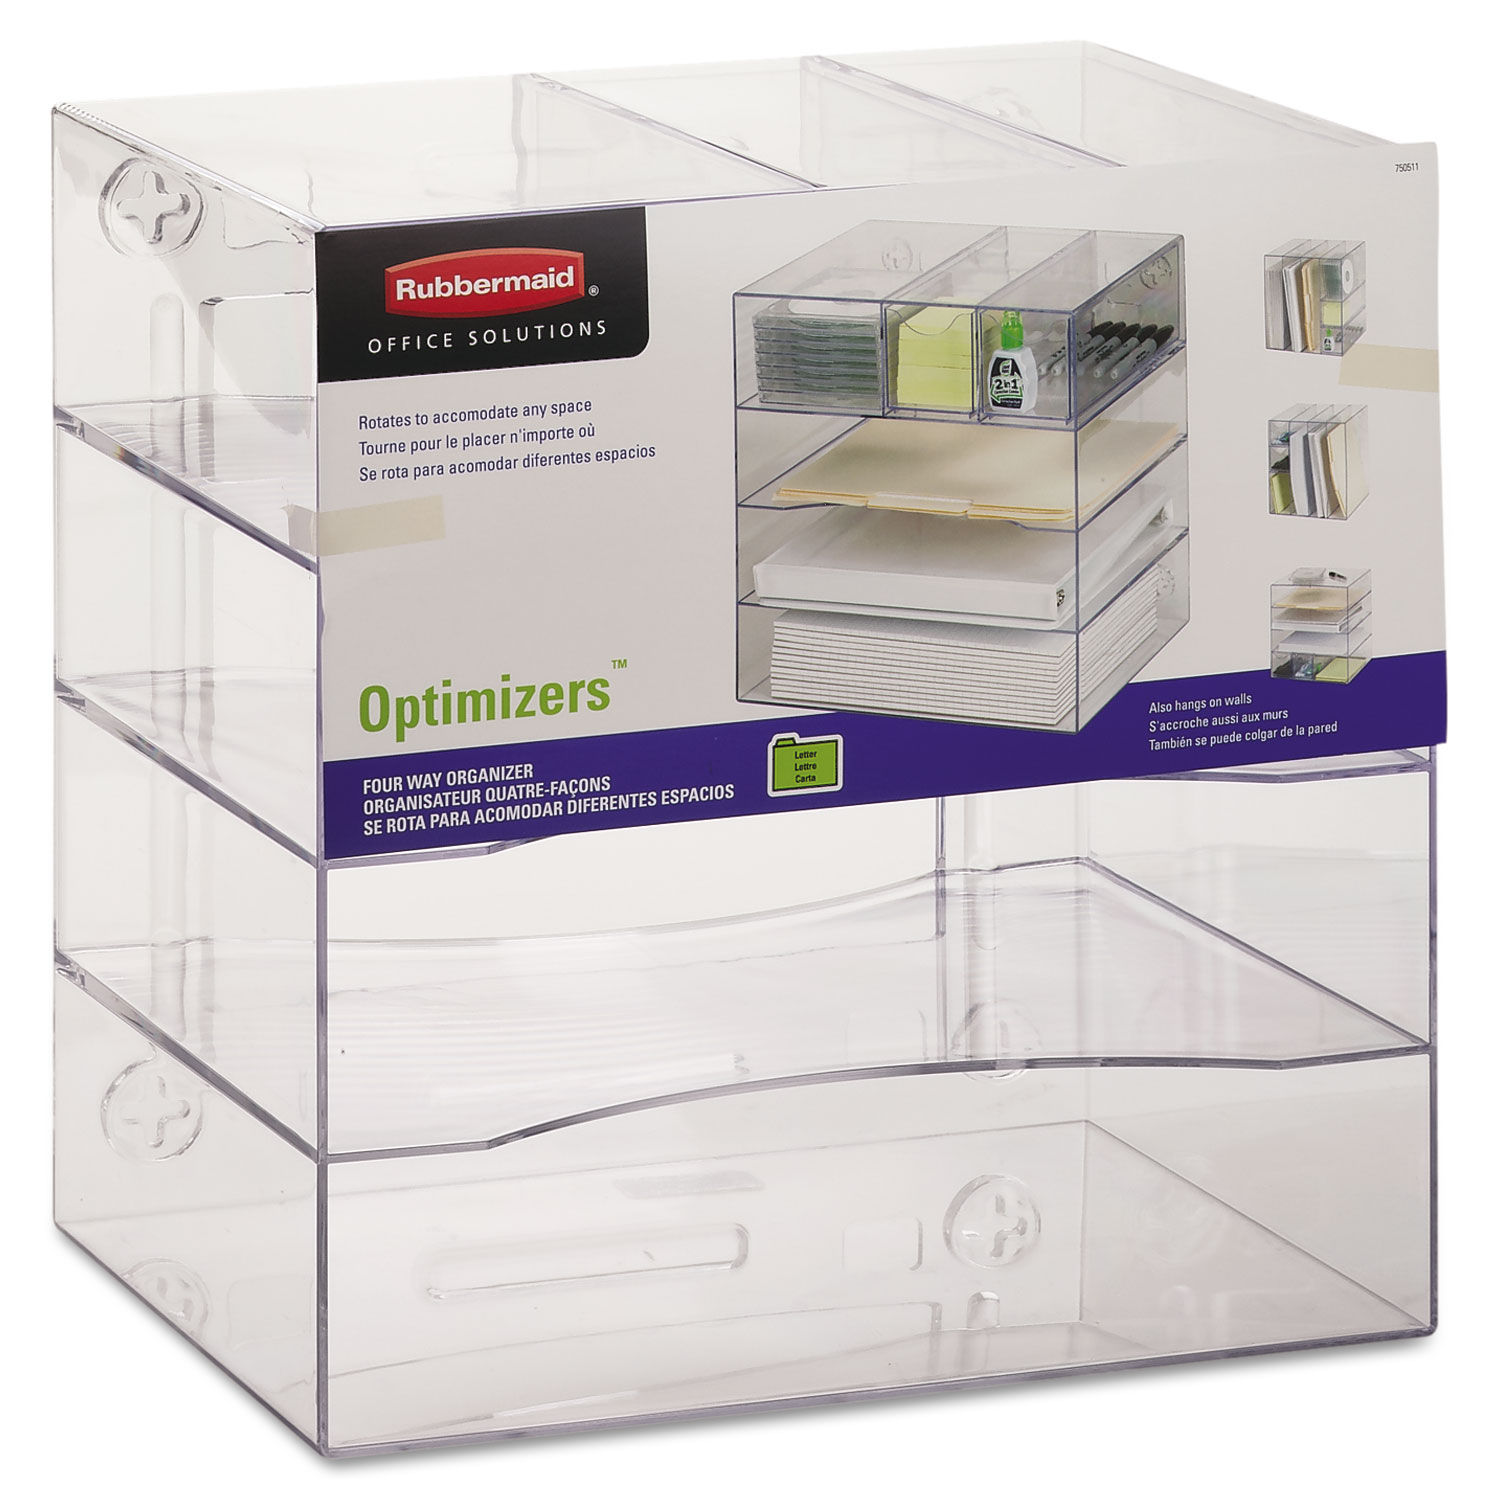 Optimizers Four Way Organizer With Drawers By Rubbermaid Rub94600ros Ontimesupplies Com